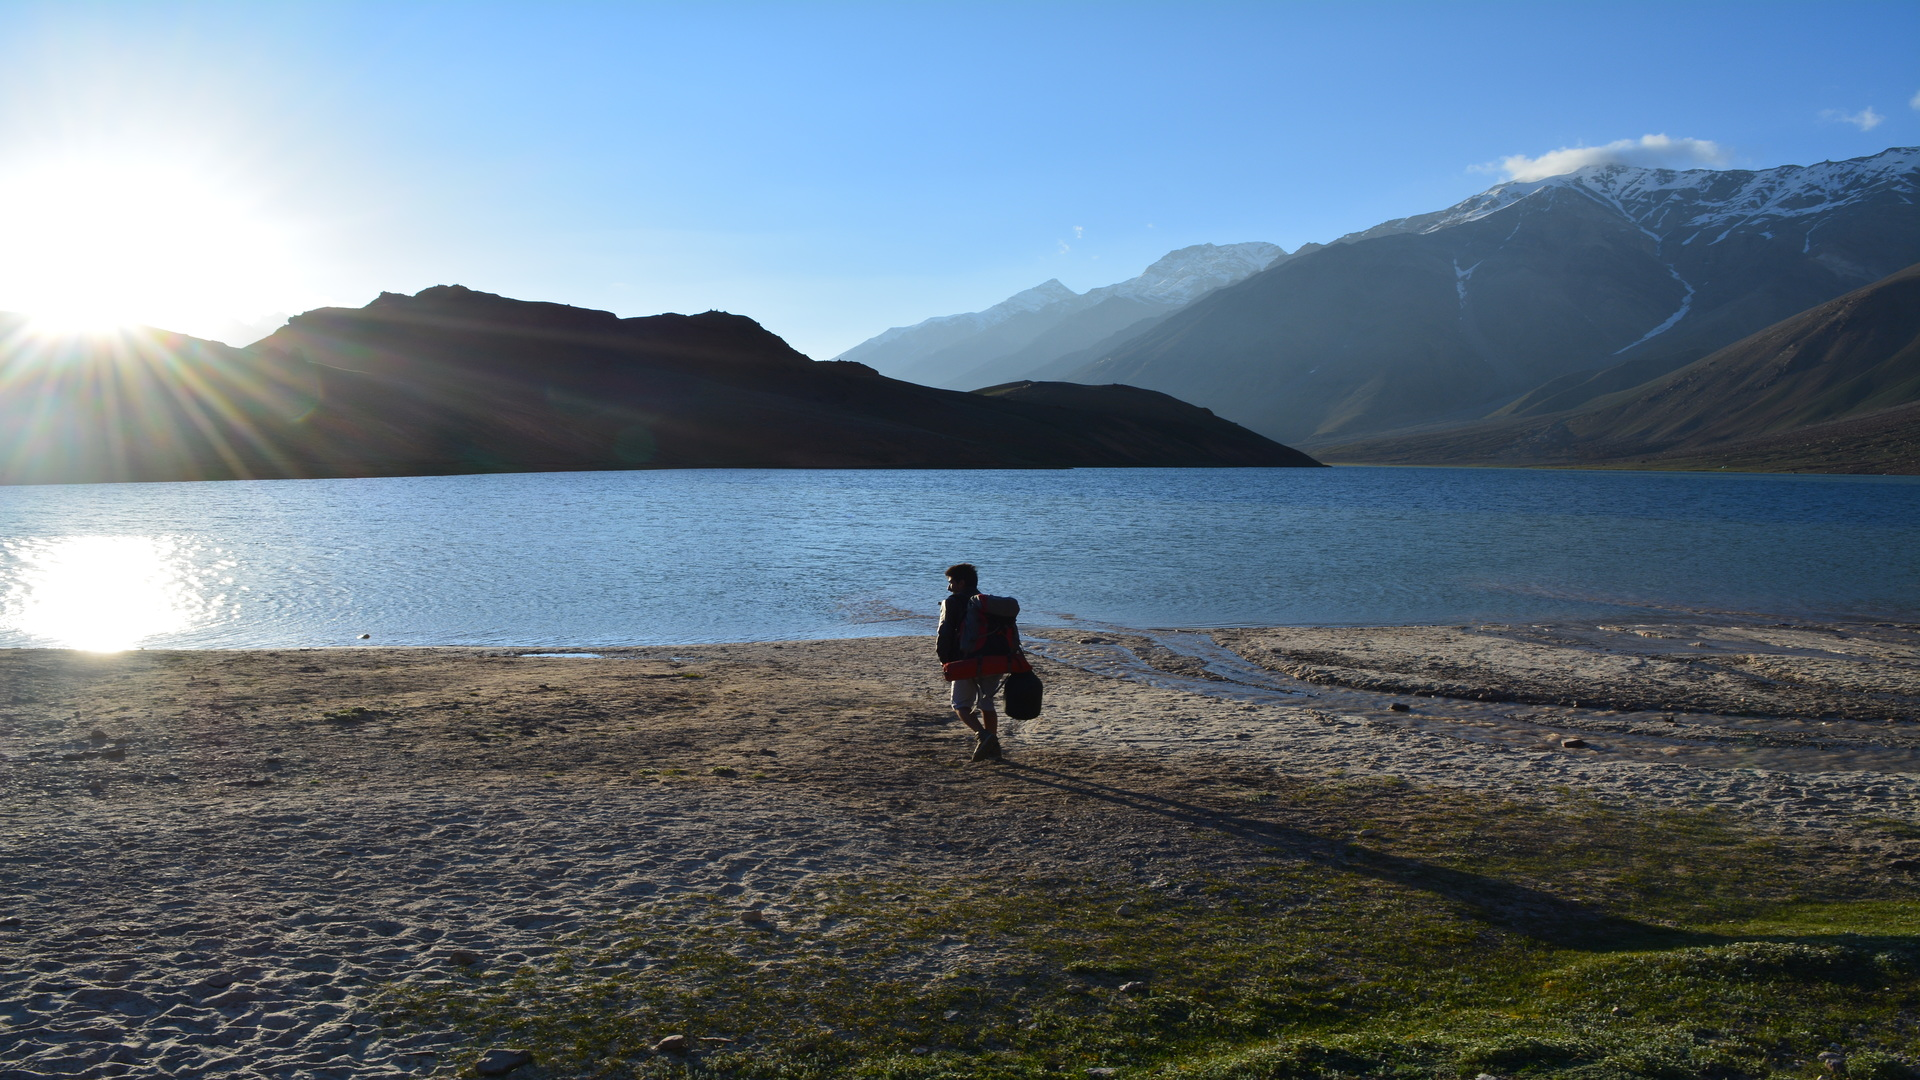 Chandertal Lake 22 - Learn to travel, Travel to learn